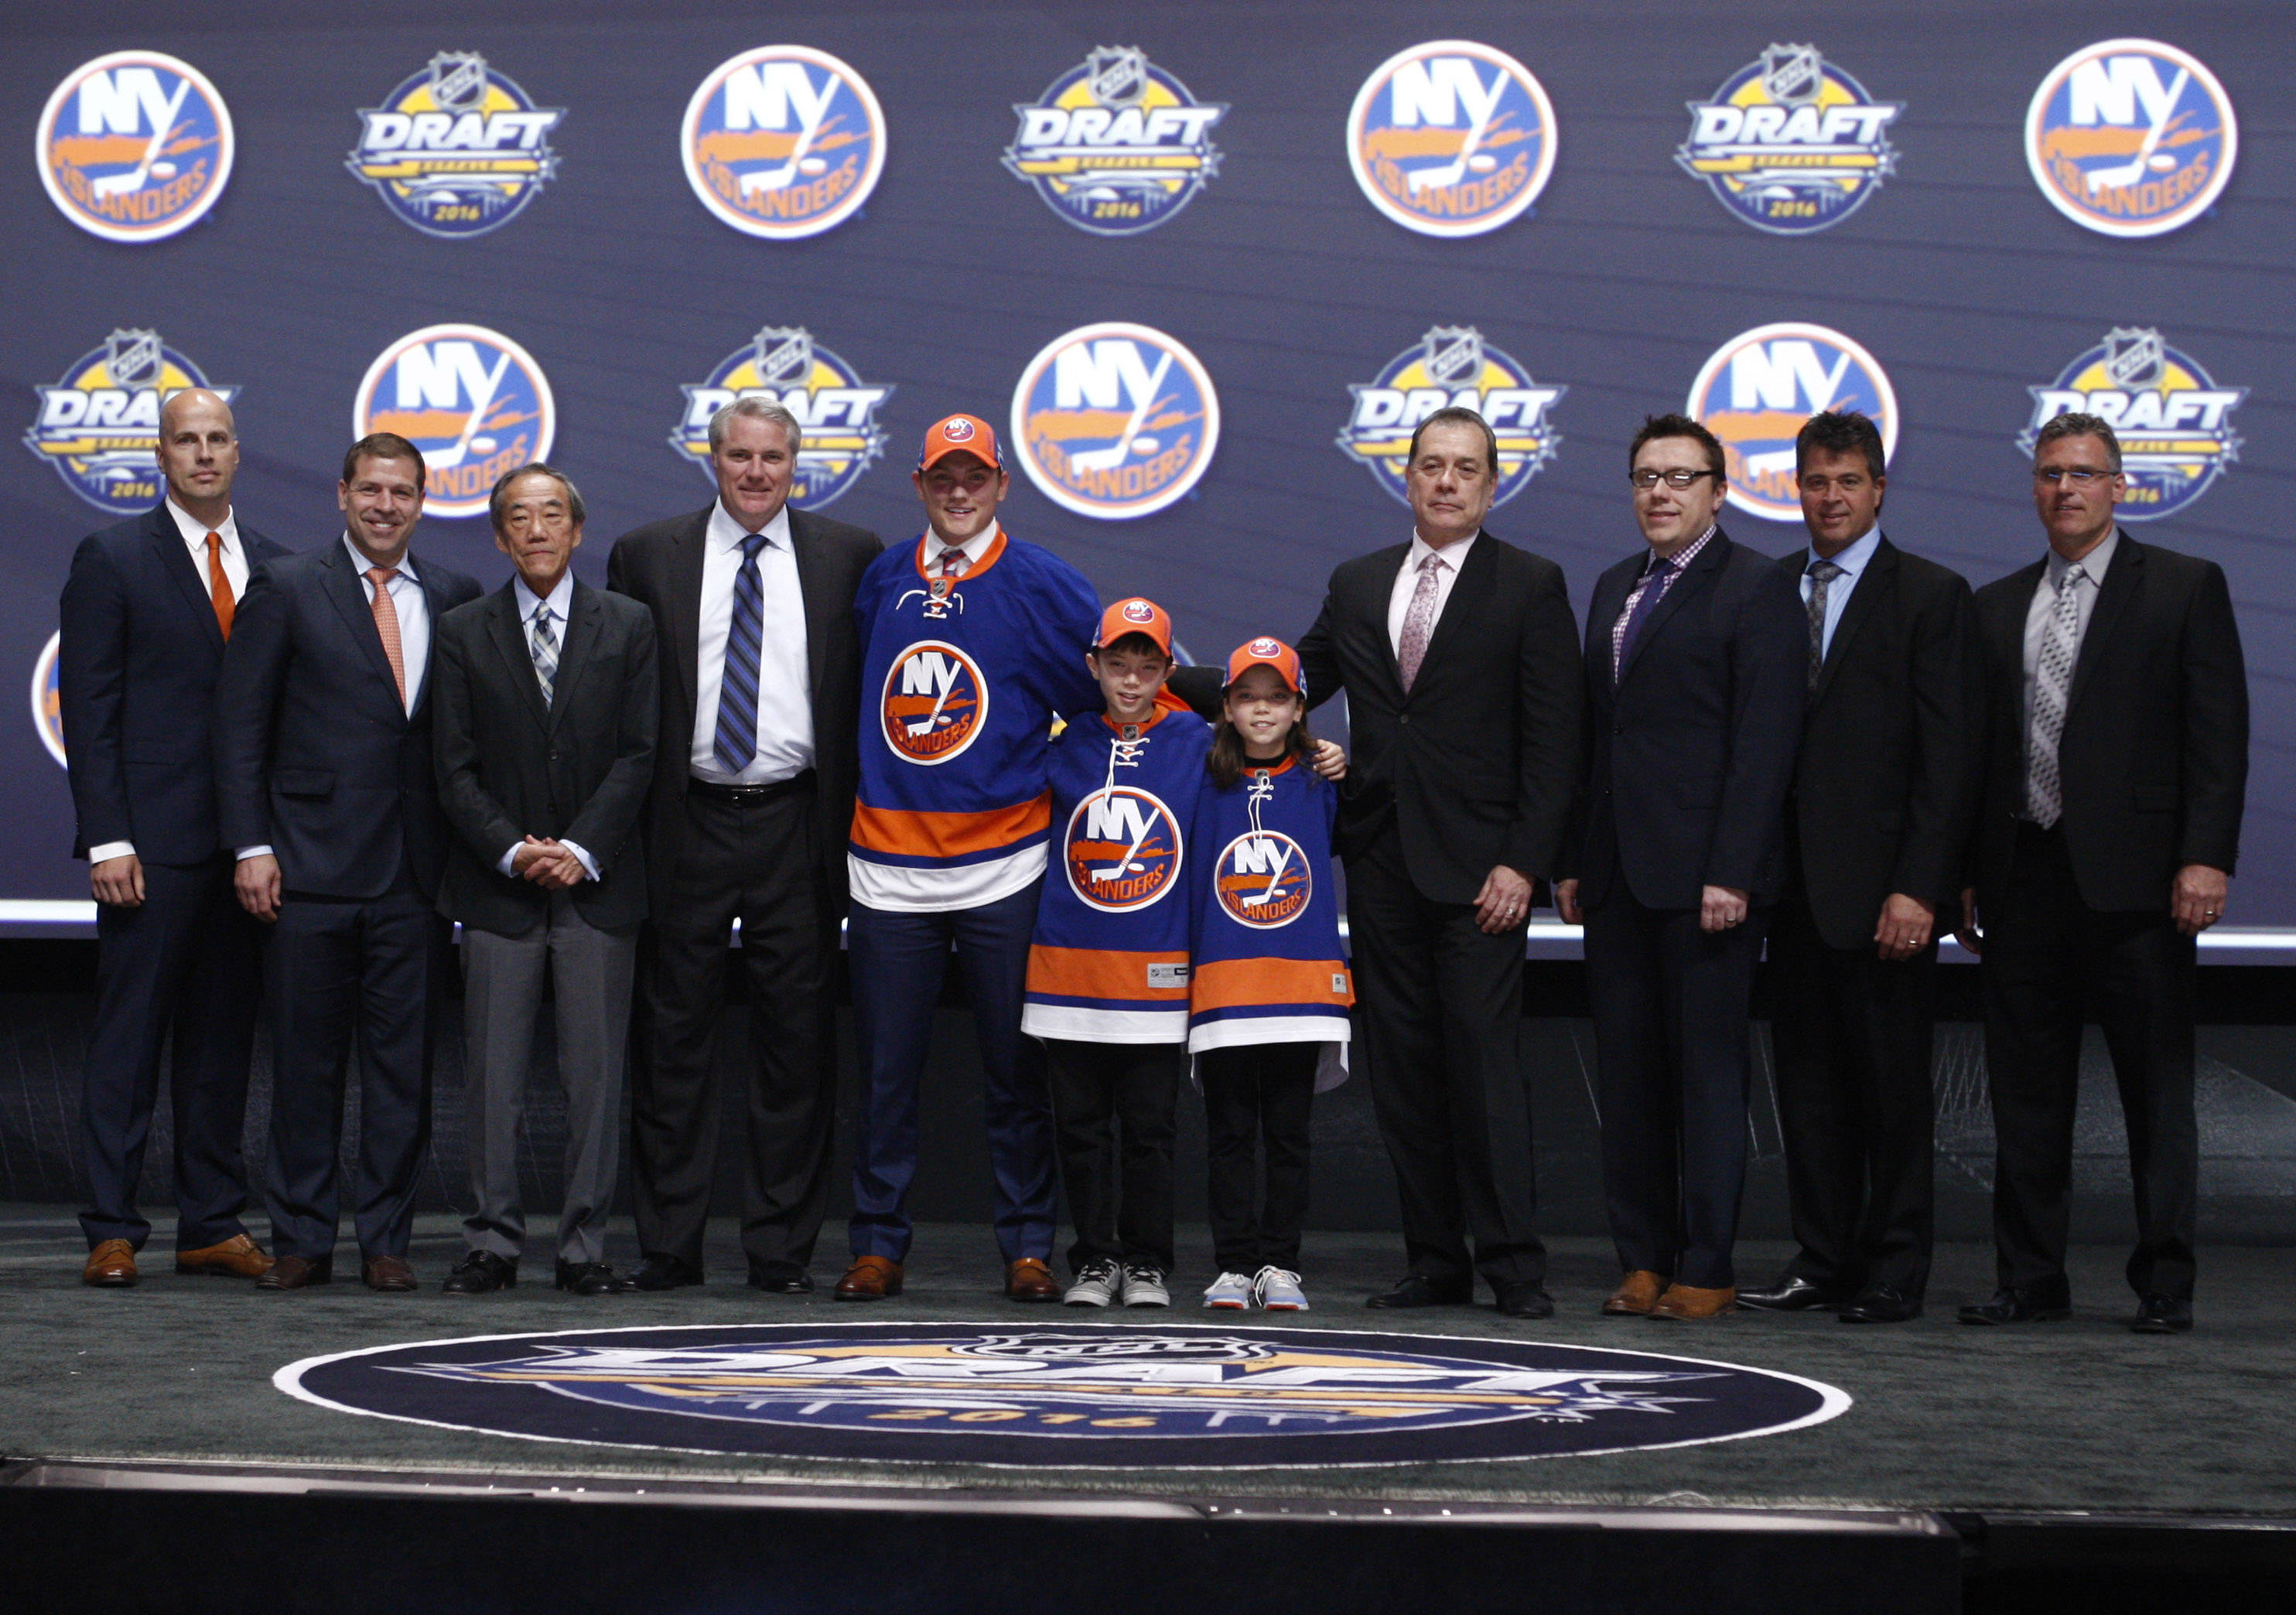 9355015-nhl-nhl-draft